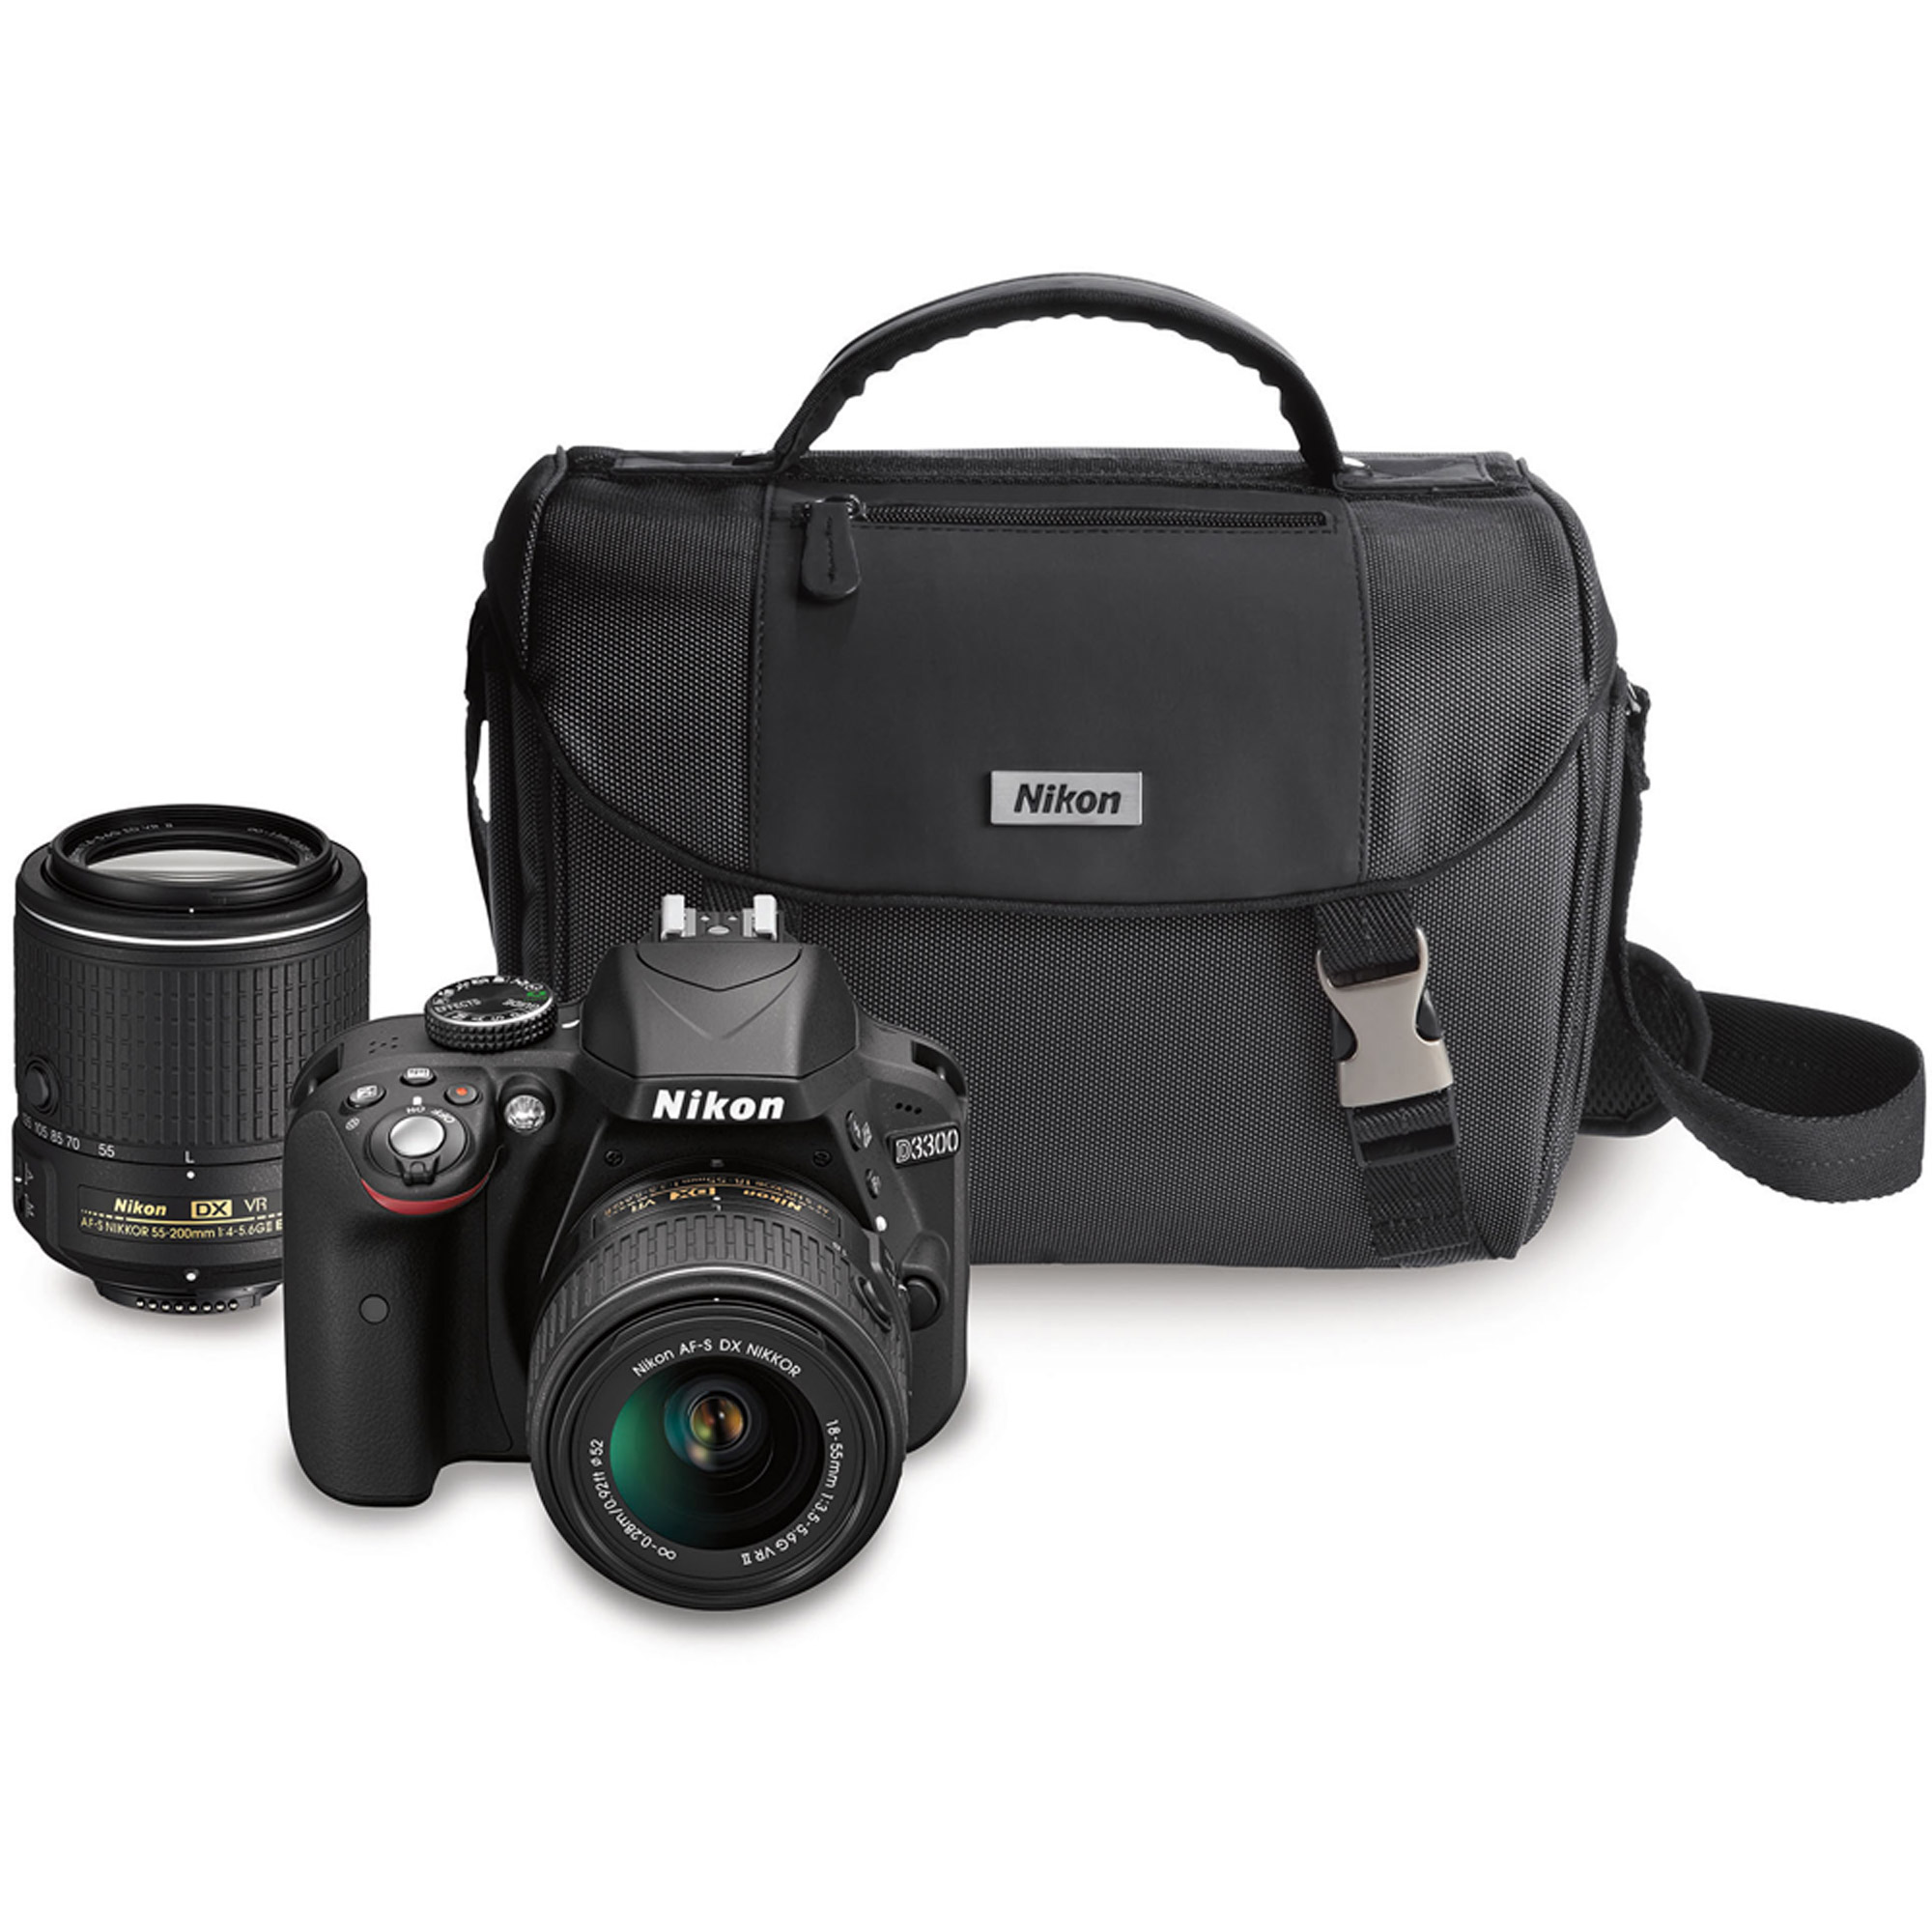 Nikon Black D3300 DX Digital SLR Camera with 24.2 Megapixels and 18-55mm and 55-200mm Lenses Included